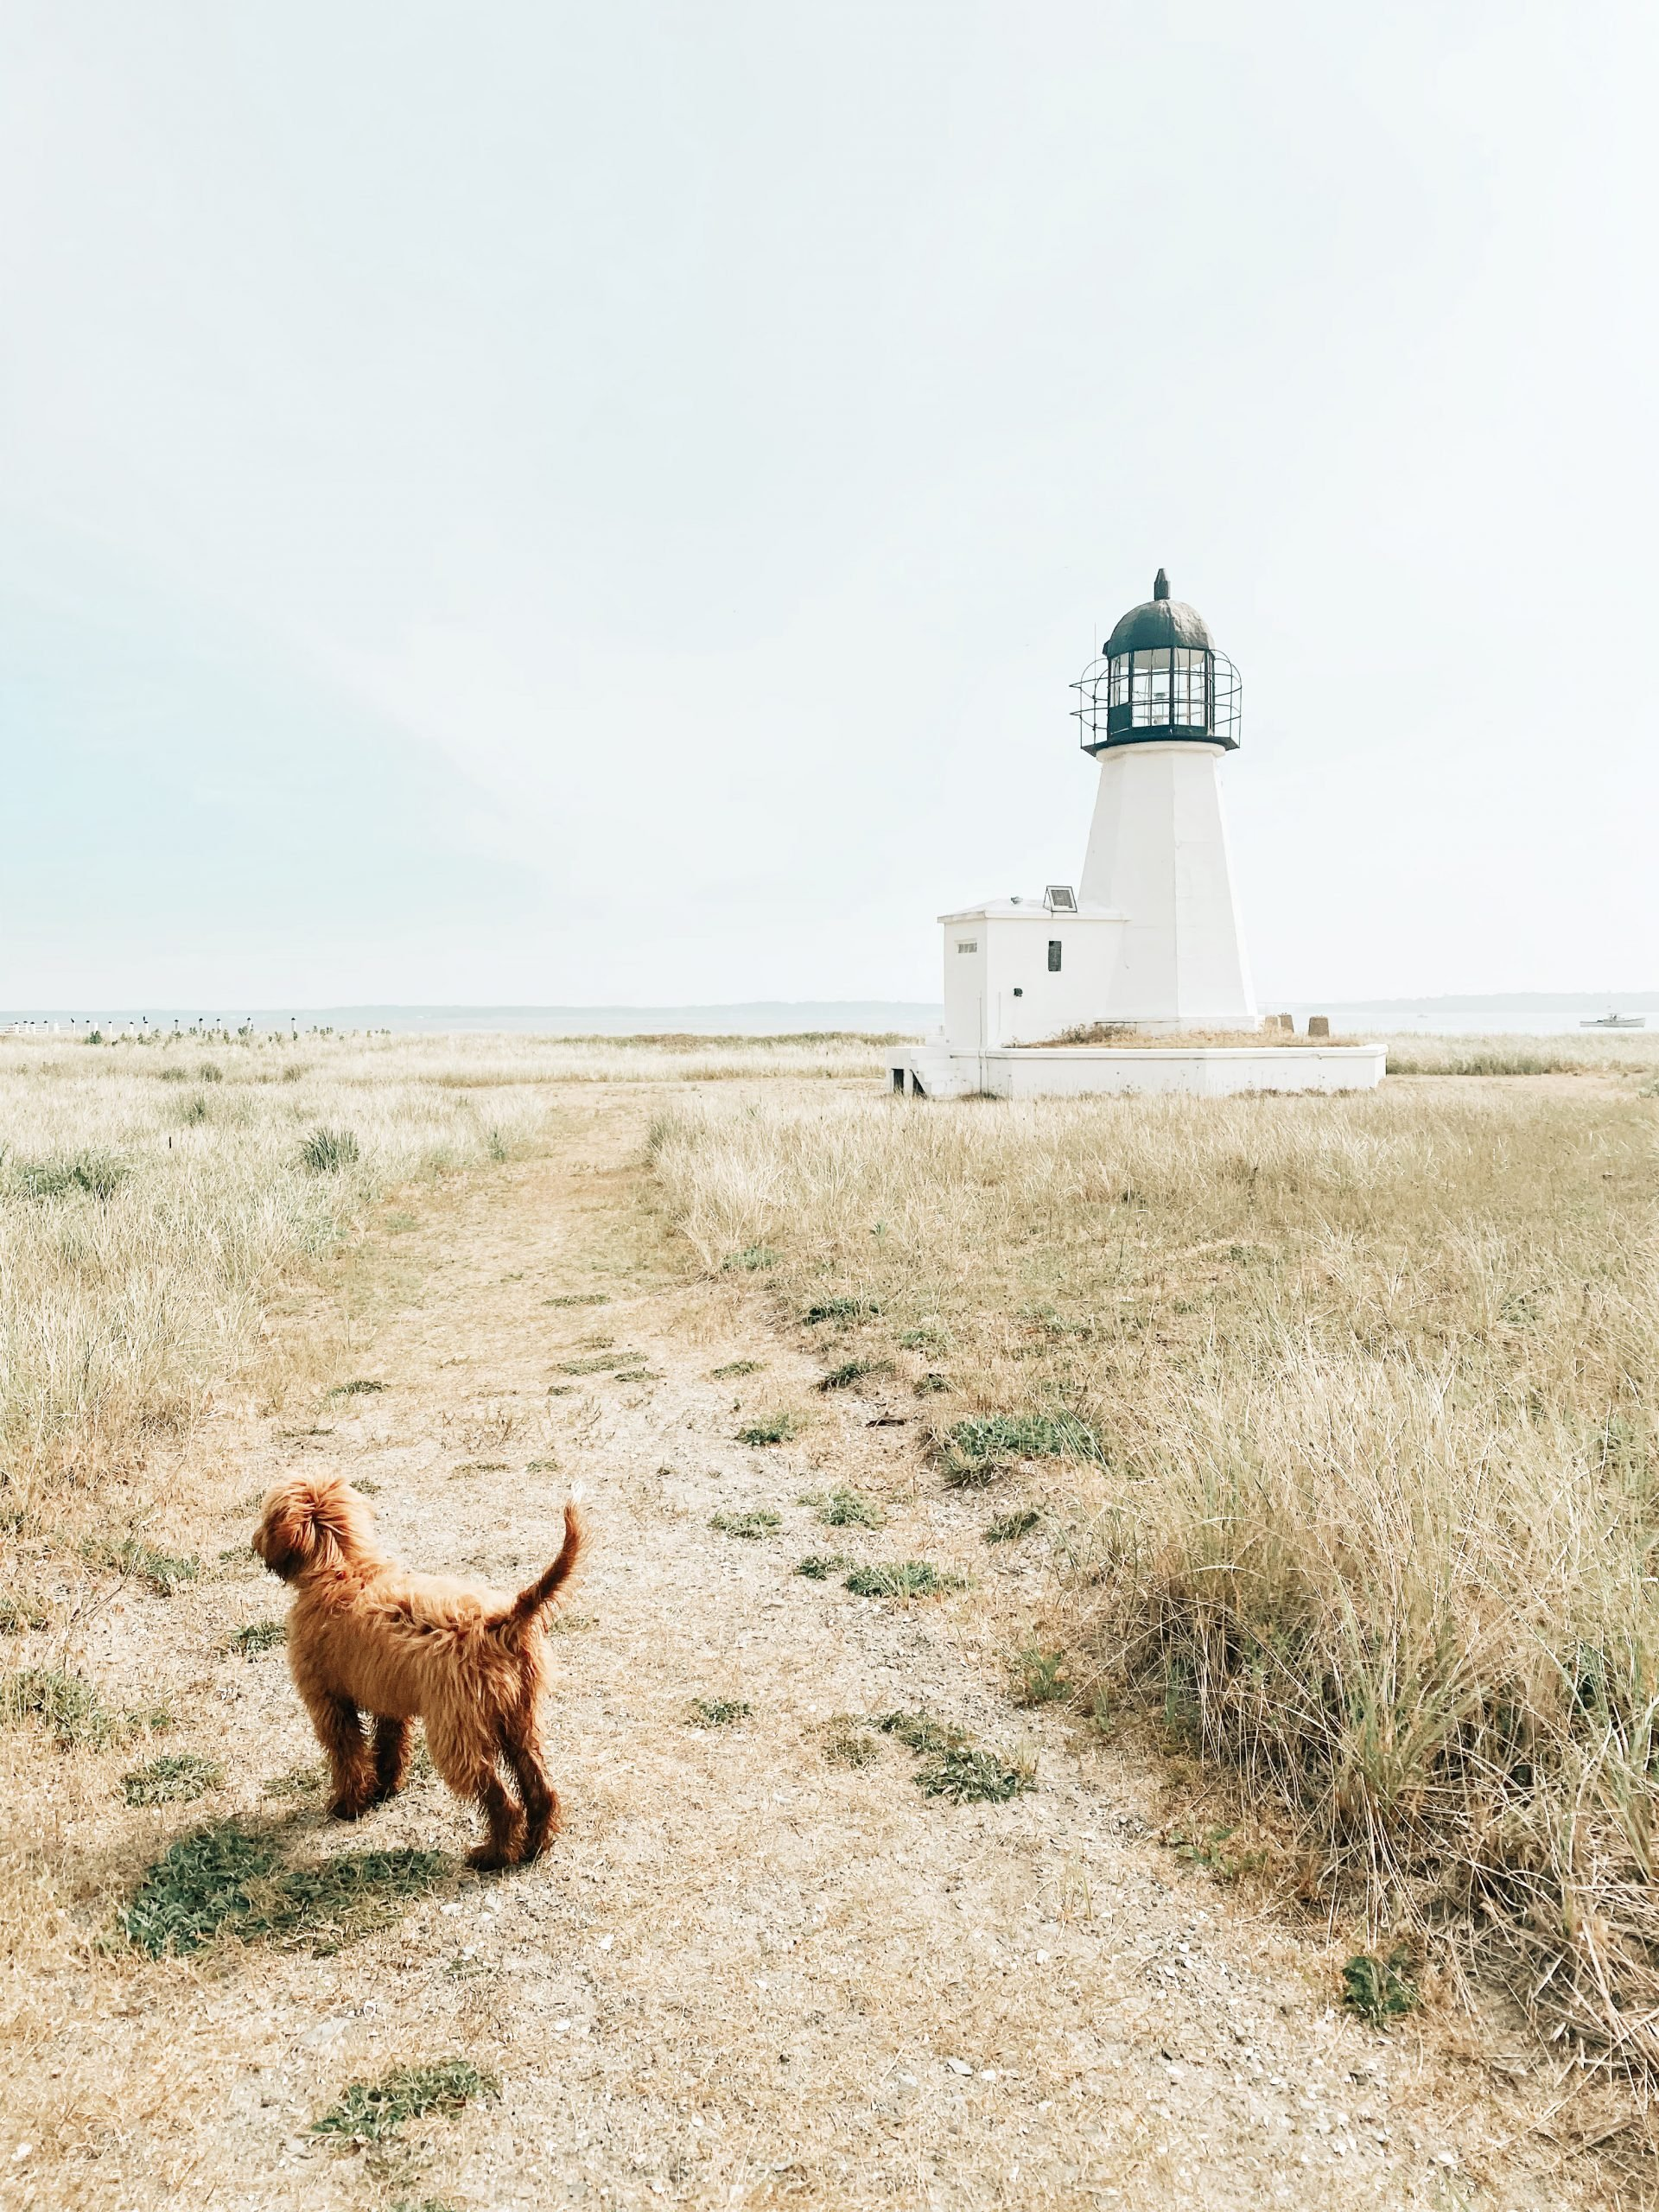 Lifestyle Blogger Chocolate and Lace shares her family trip to Prudence Island with Travel Guide.